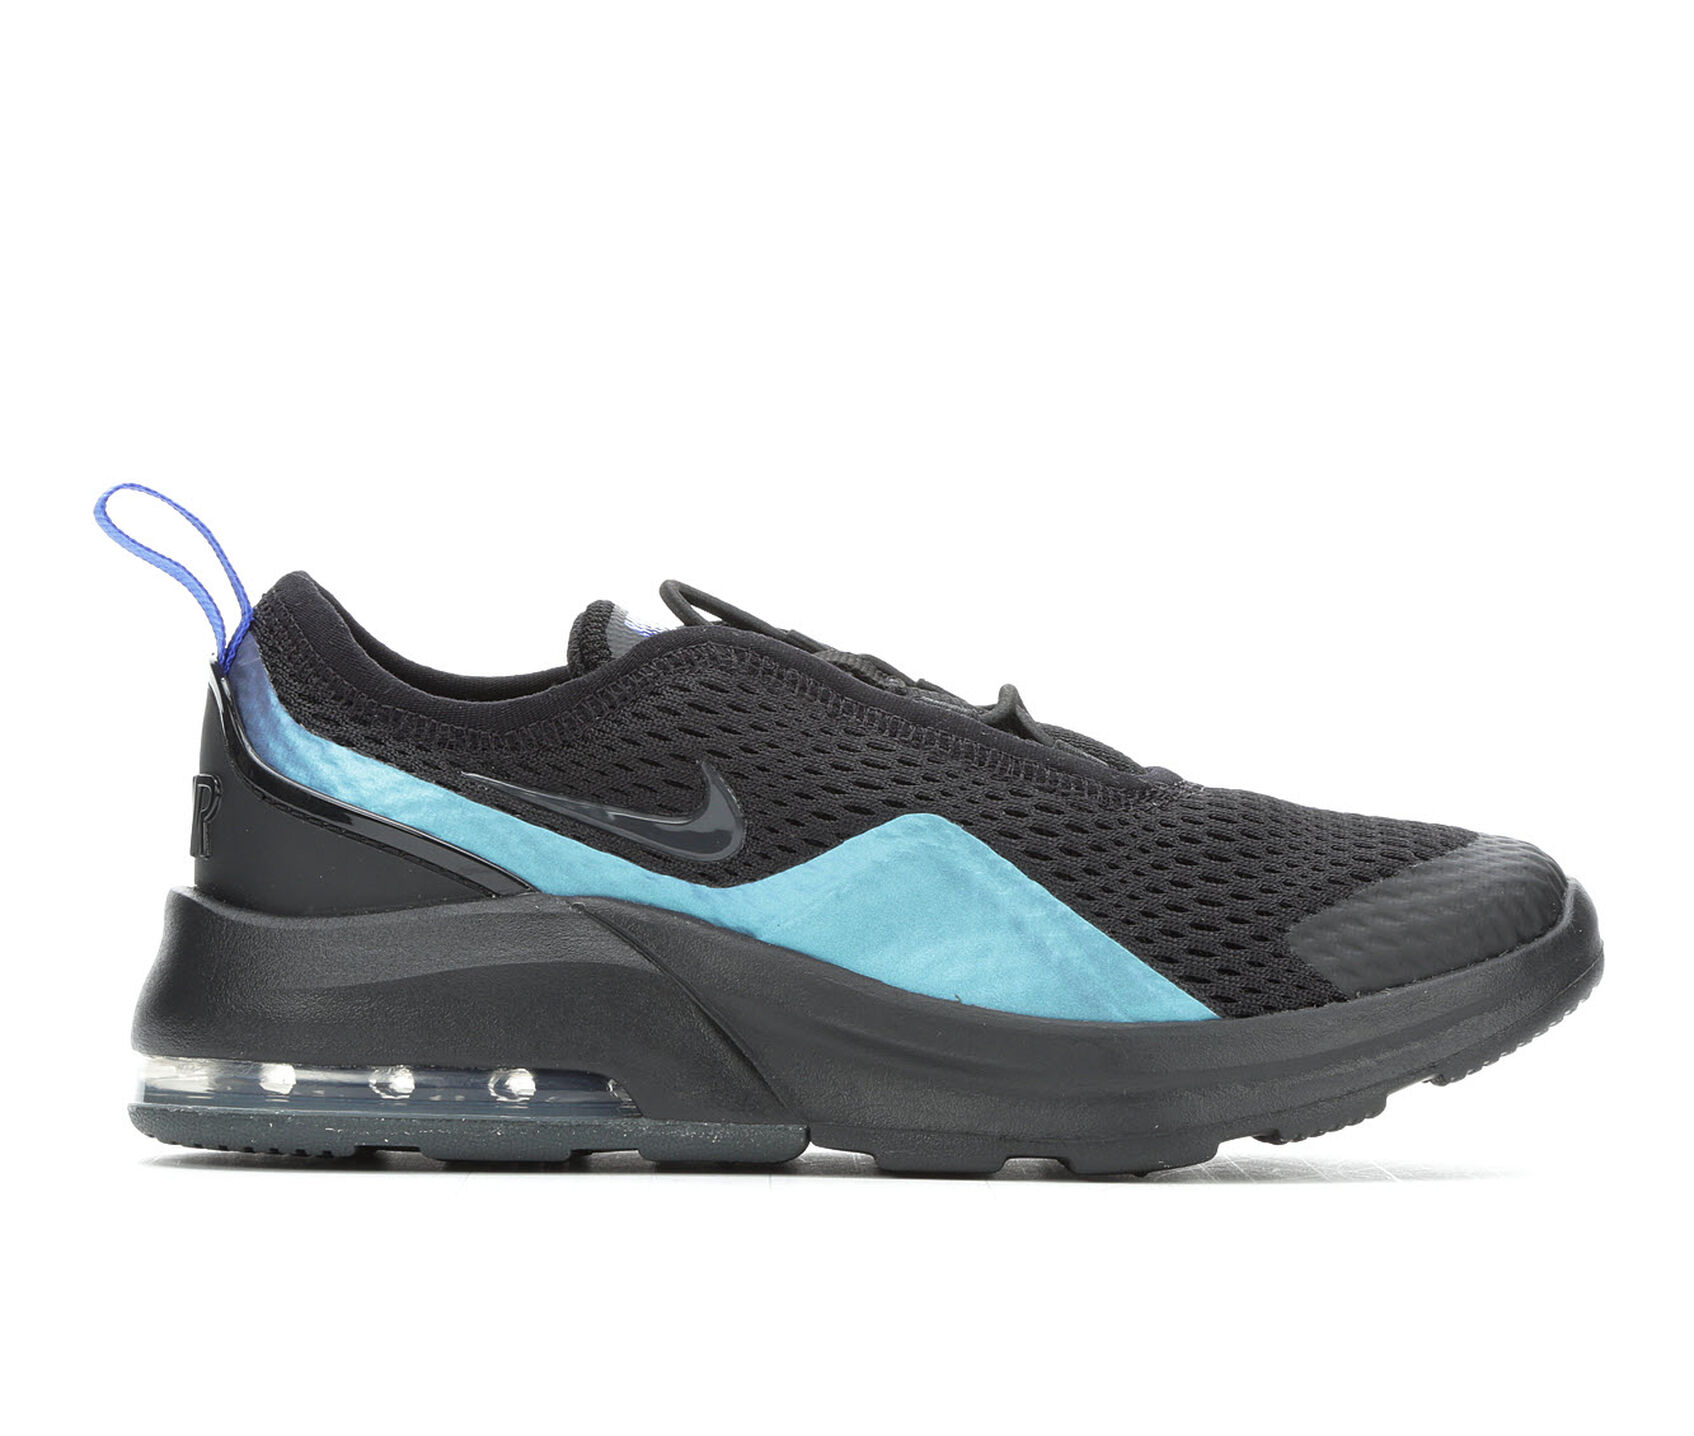 competitive price c2d66 d0de4 ... Nike Little Kid Air Max Motion 2 Running Shoes. Previous